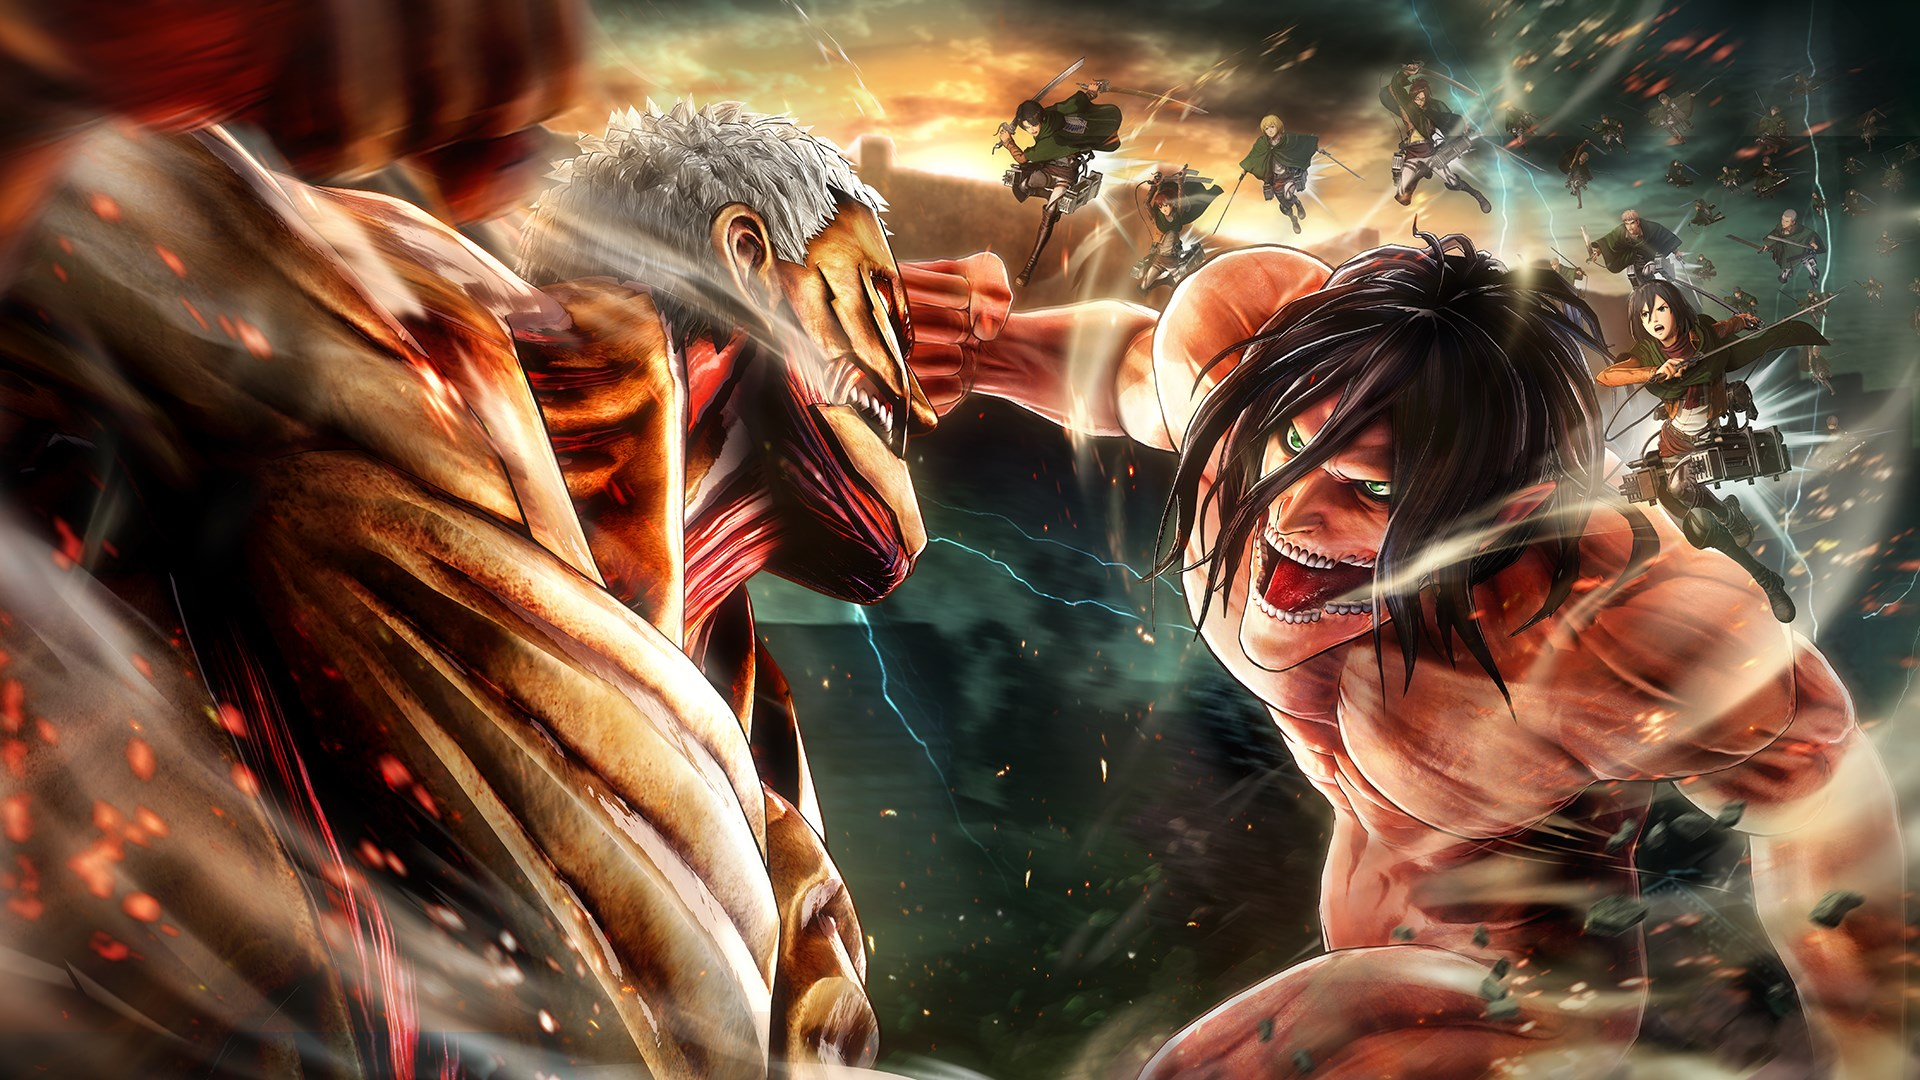 Attack on Titan Chapter 137 Read Online and Official Release Date